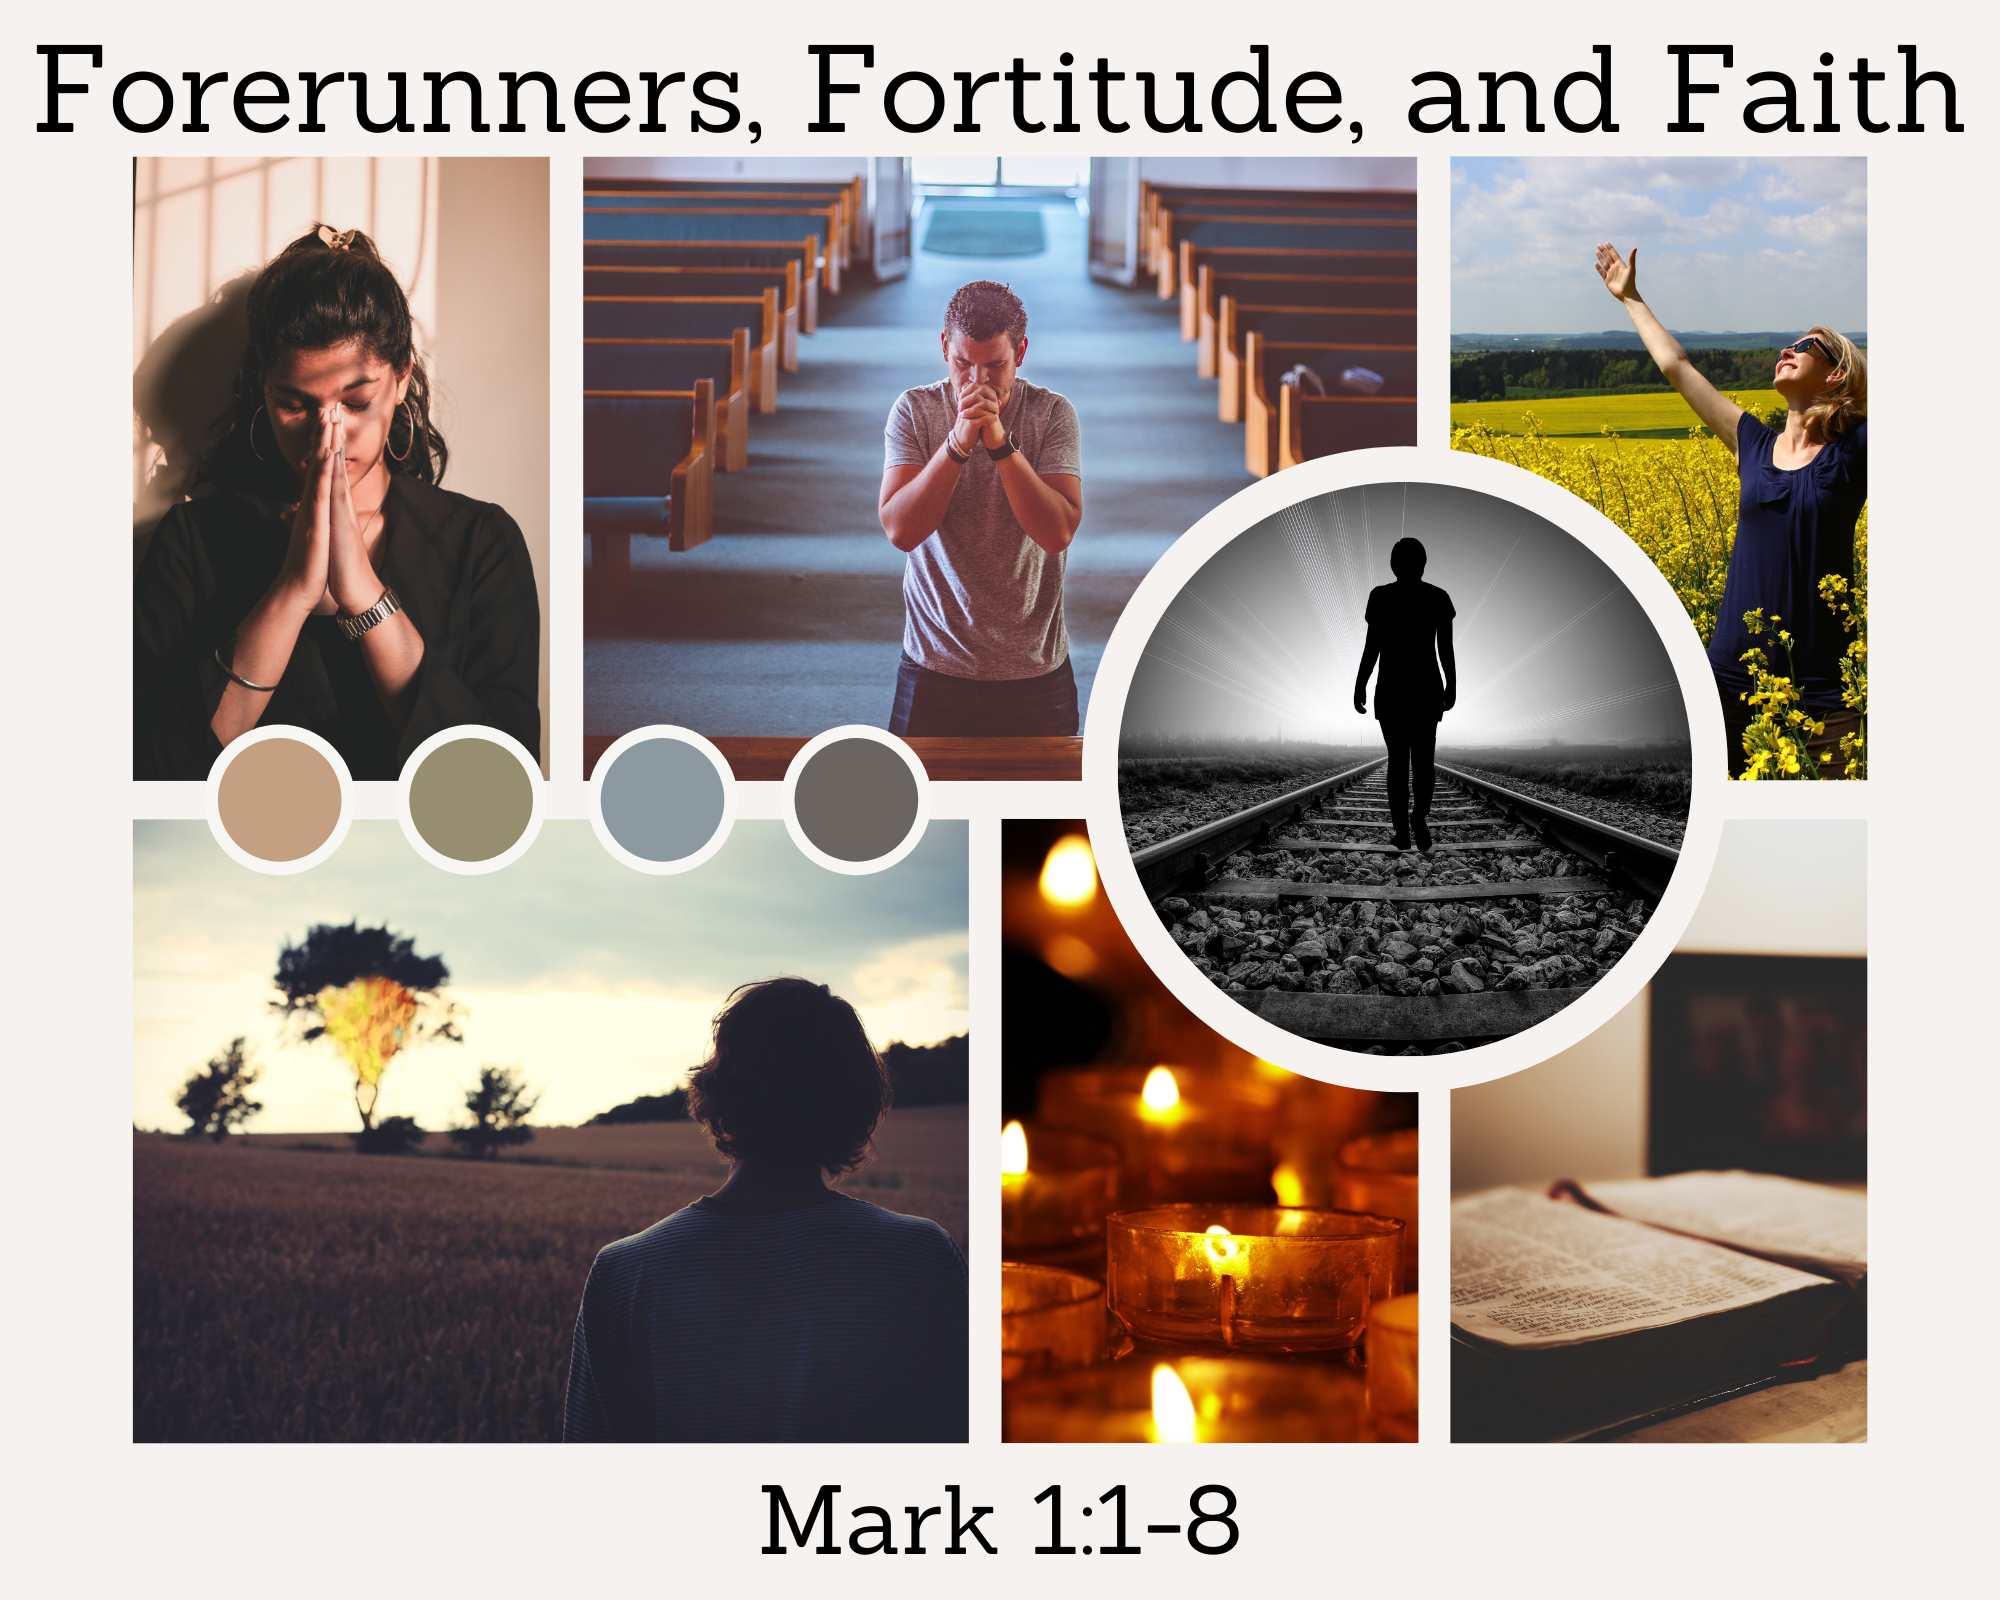 Forerunners, Fortitude, and Faith 12.06.20